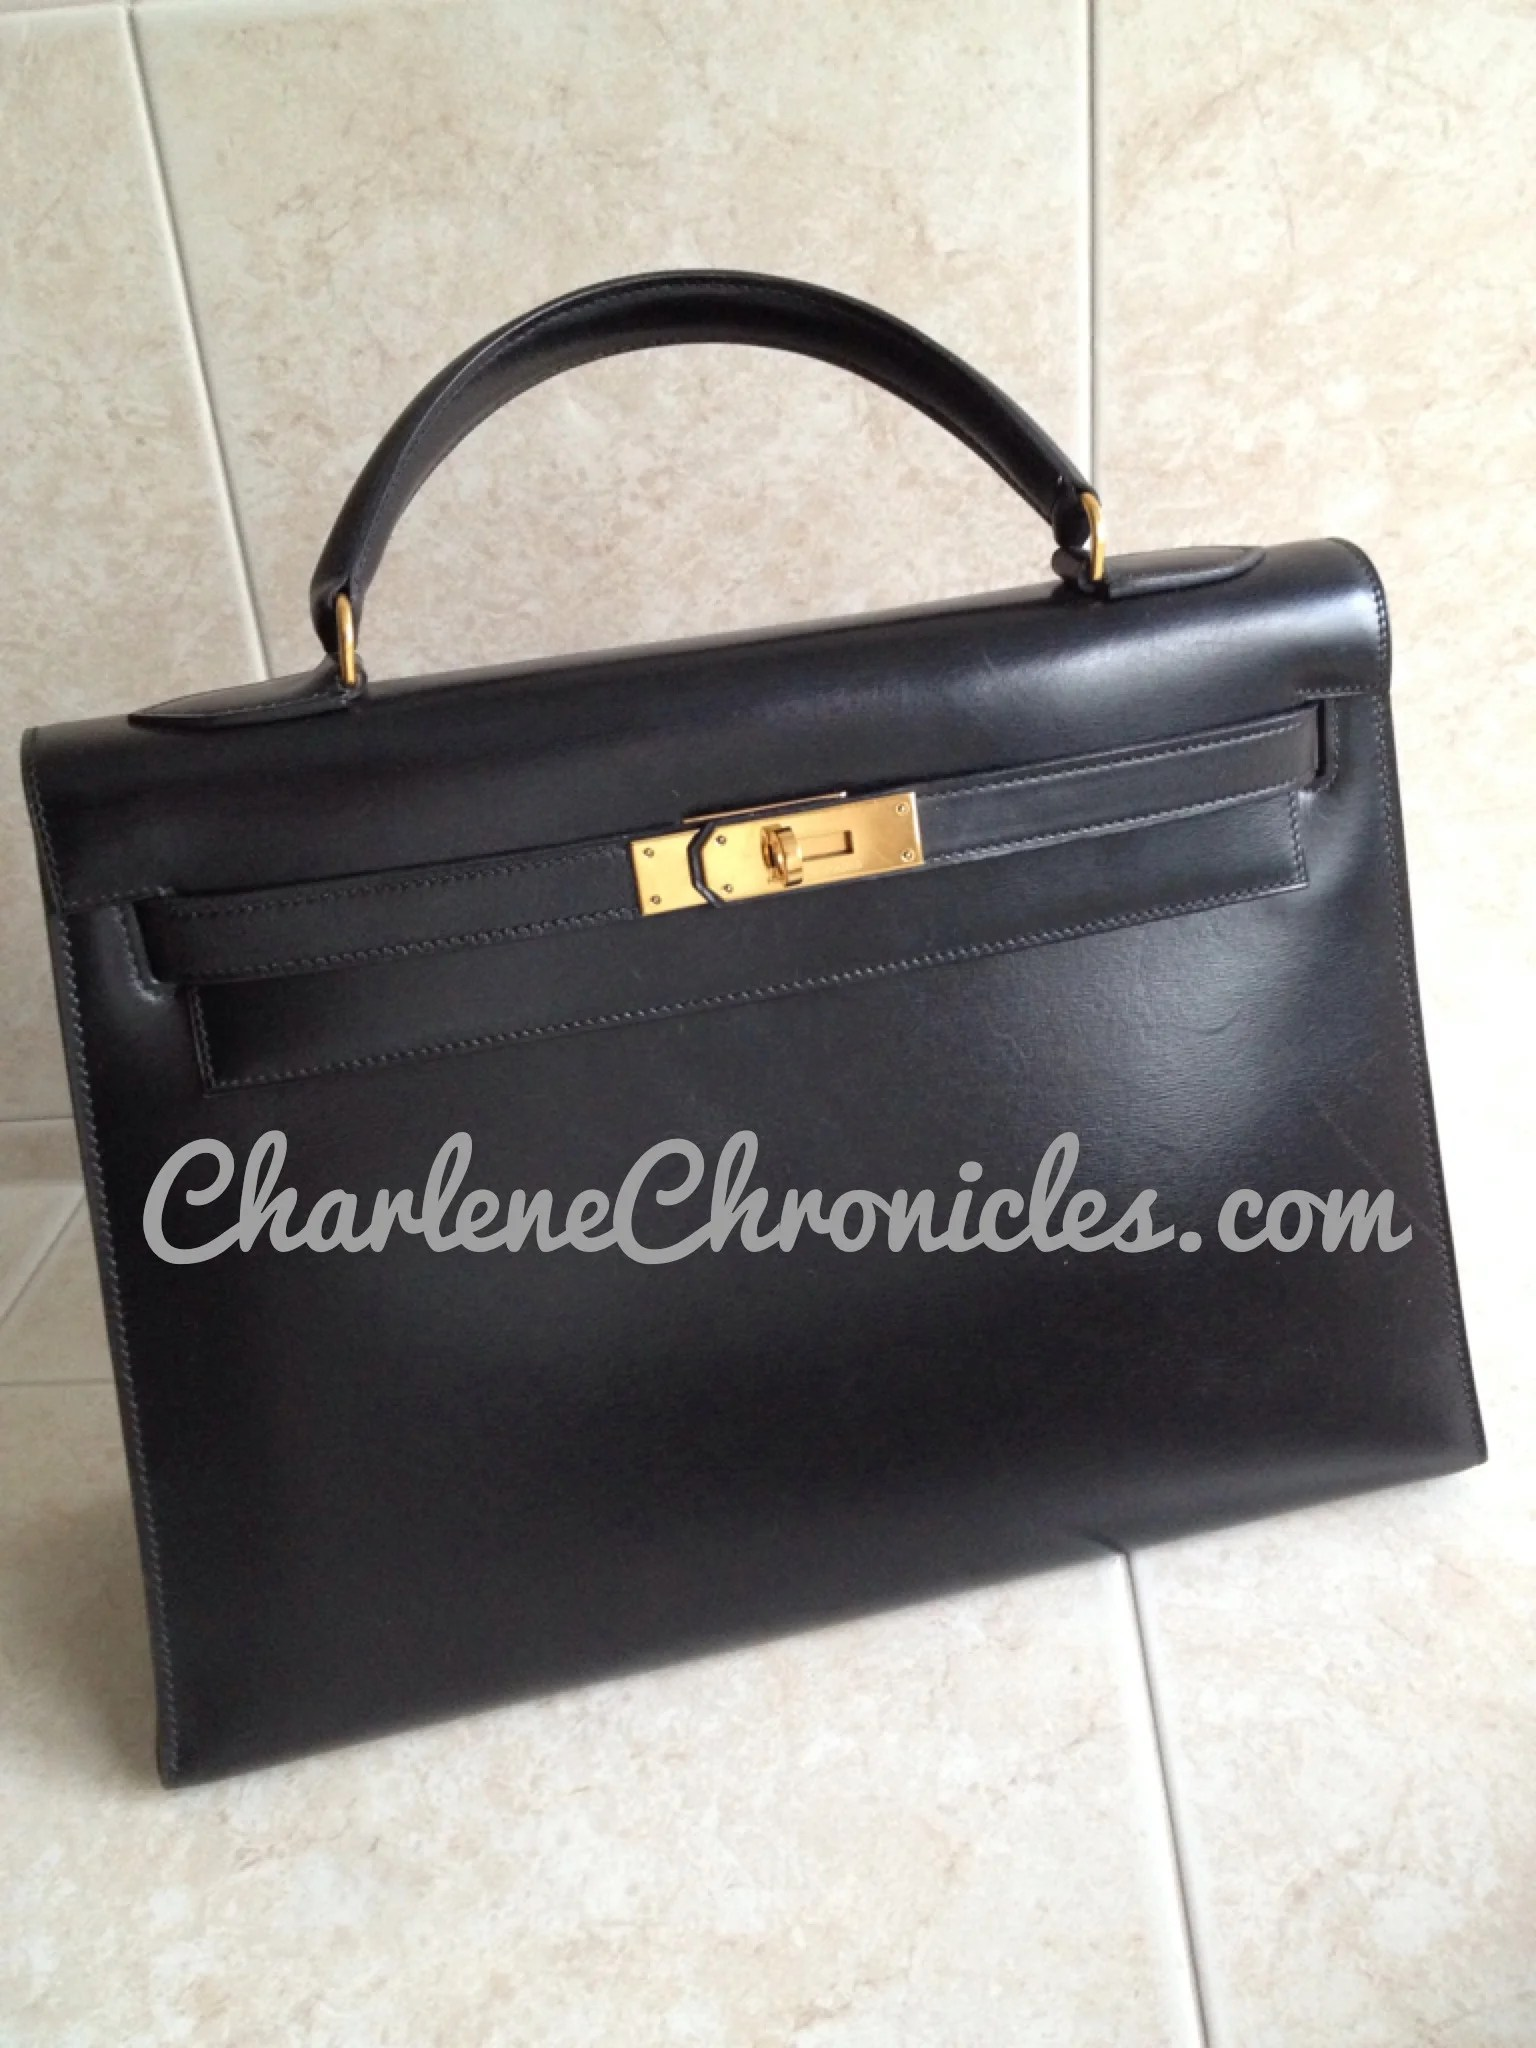 117af8f9f12c Hermes Kelly Bag Sizes and Prices - Charlene Chronicles